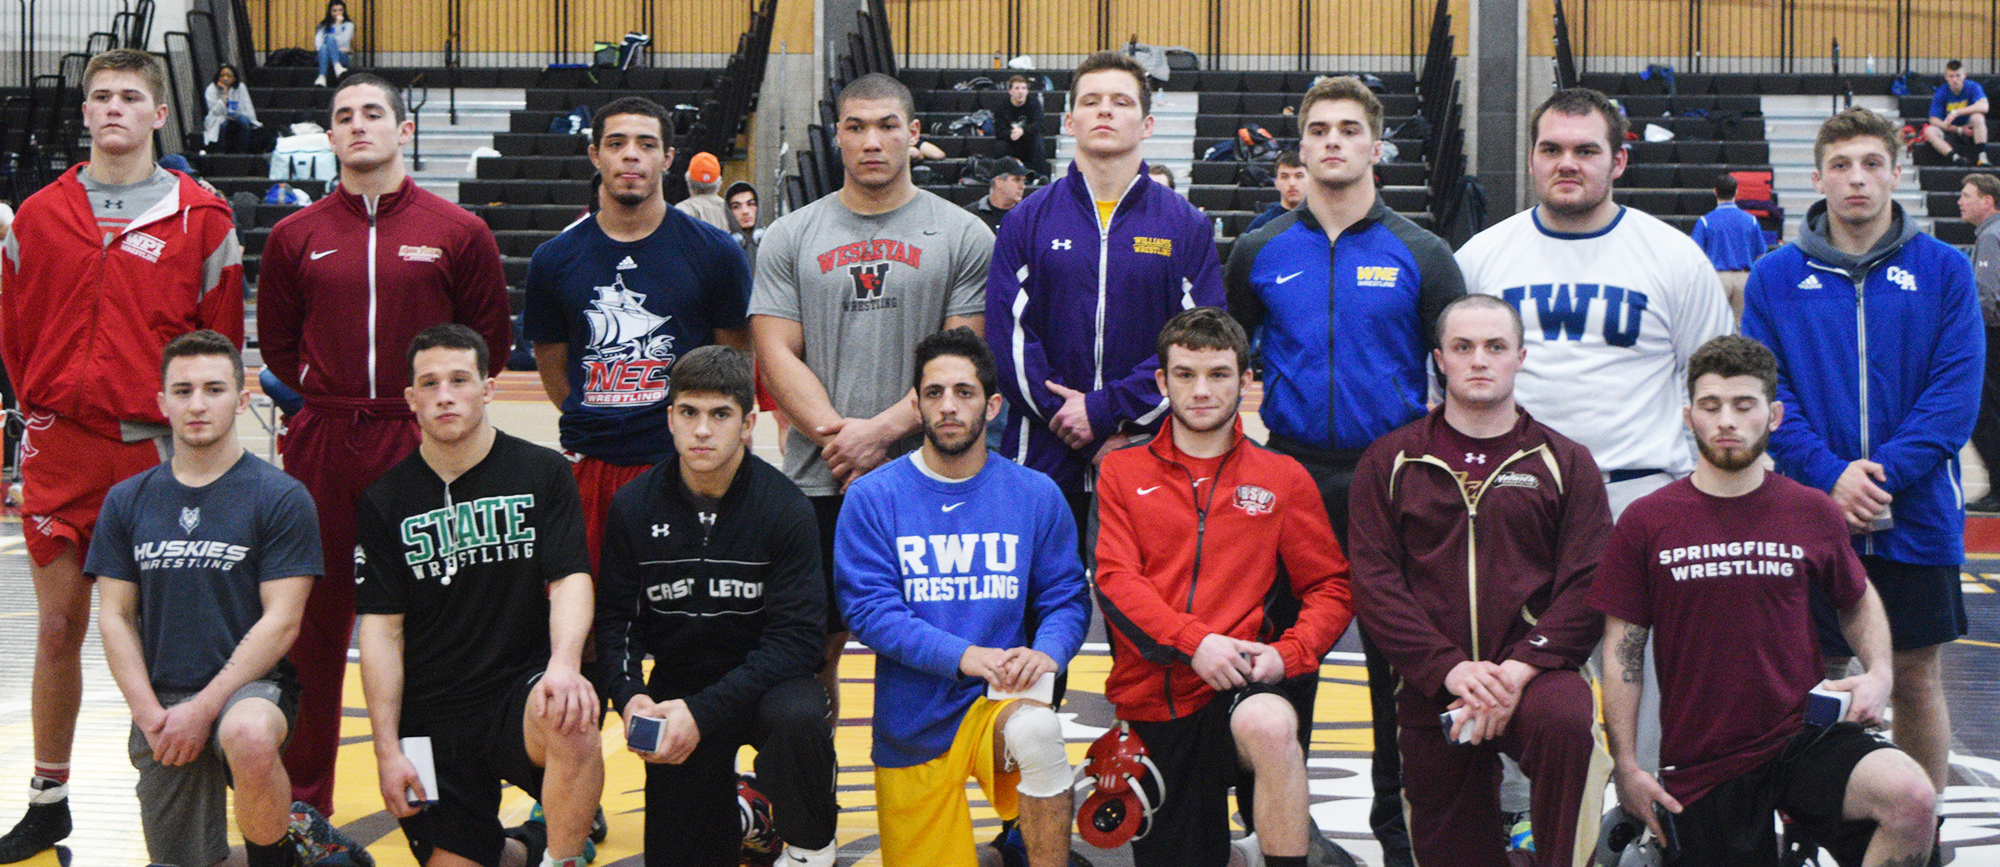 Sophomore John Boyle (top row, third from right) earned All-Tournament honors after posting a 4-0 record at 184 pounds at the NEWA Duals on Sunday. Western New England finished tenth in the 16-team field.